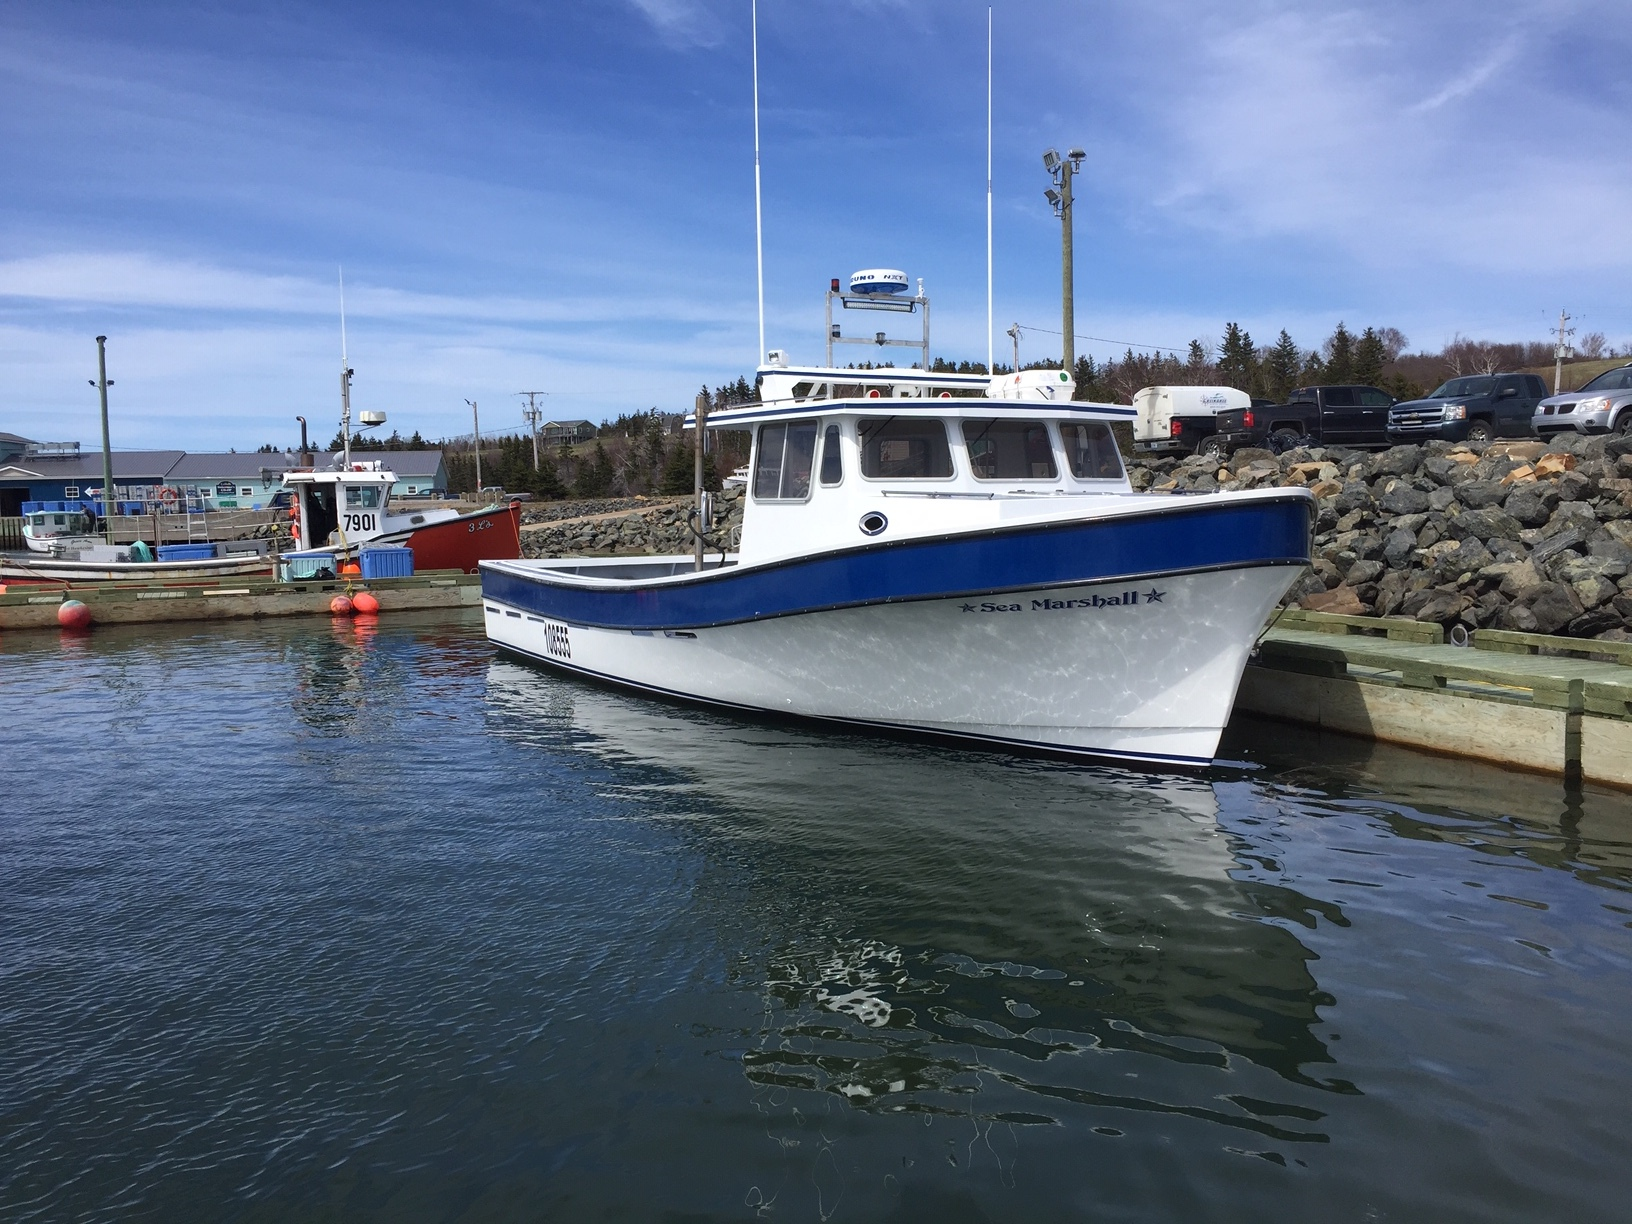 45' Samson Hull - Fishing lobster/crab - Launched May 6, 2019